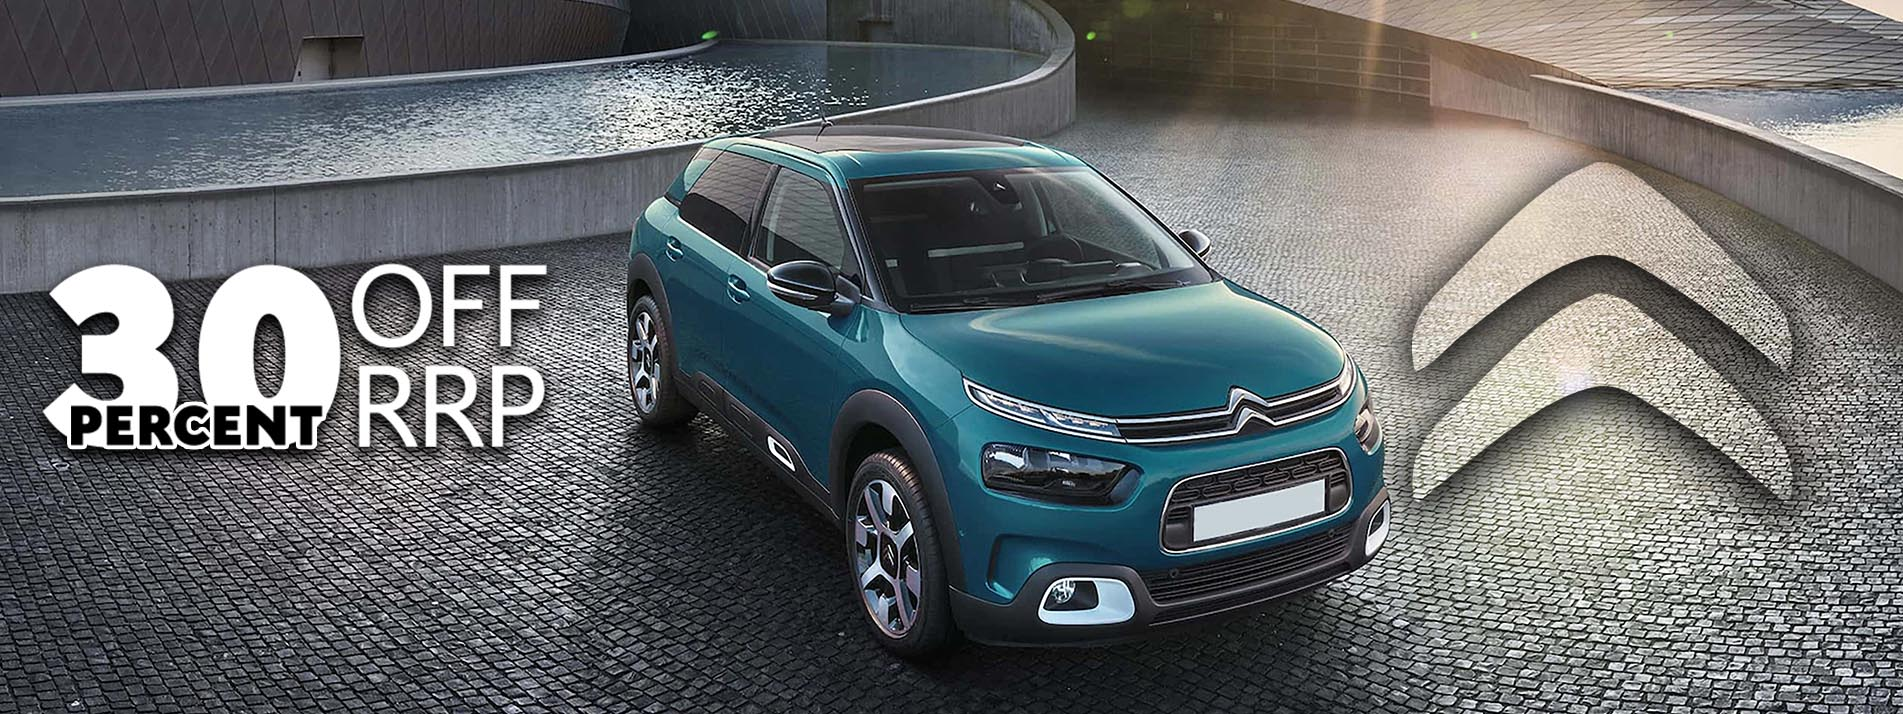 citroen-c4-cactus-flair-thirty-percent-discount-m-sli